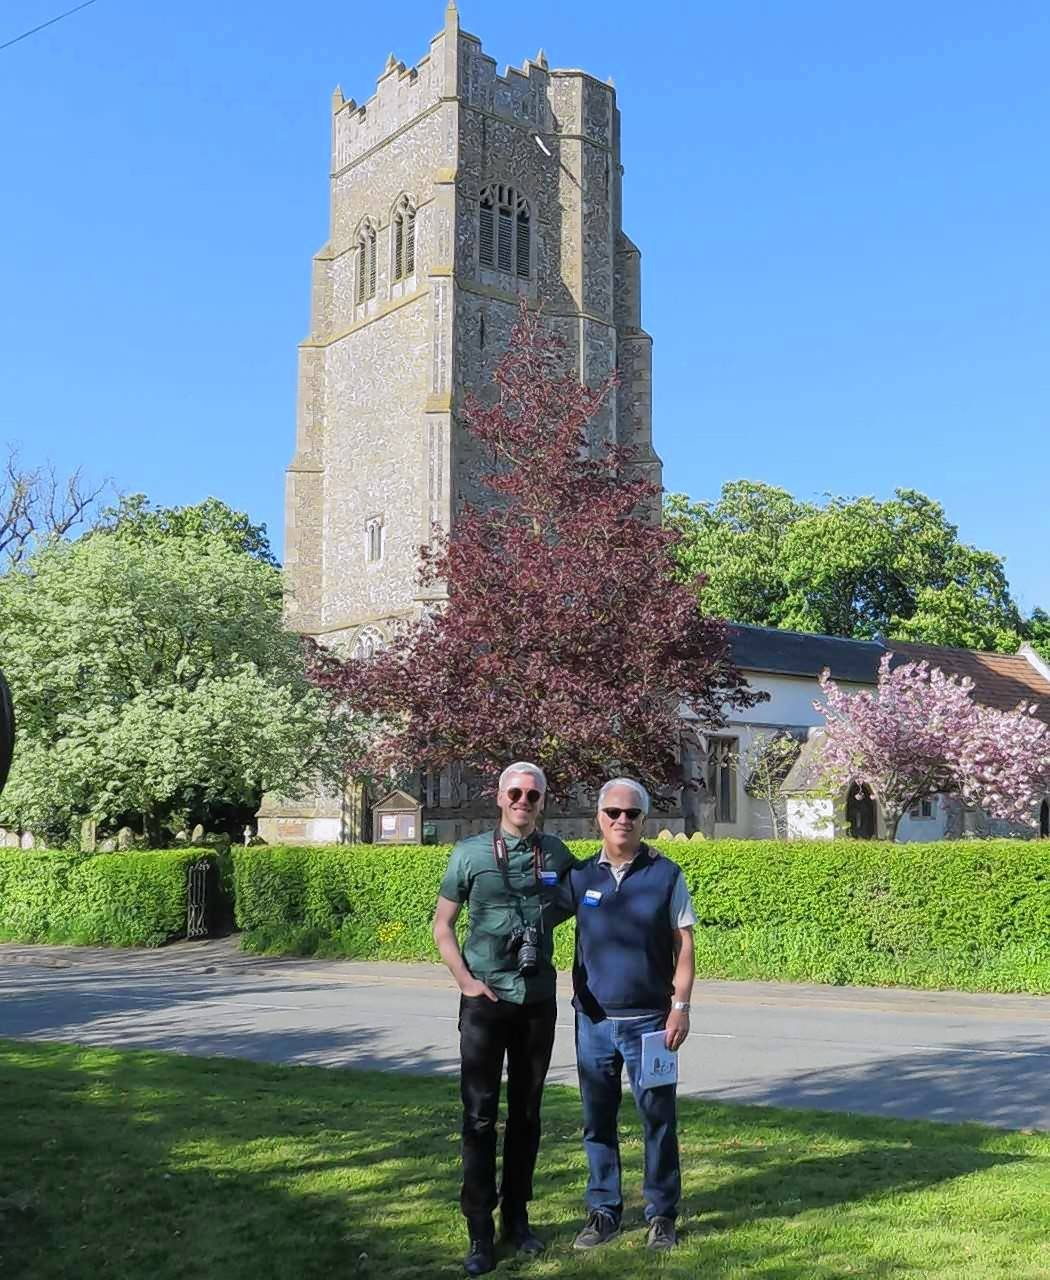 Alex and Tim Wayman in front of Parish Church of St. Mary on 95th base. Chuck Wayman often visited this church while he was stationed in England during World War II.